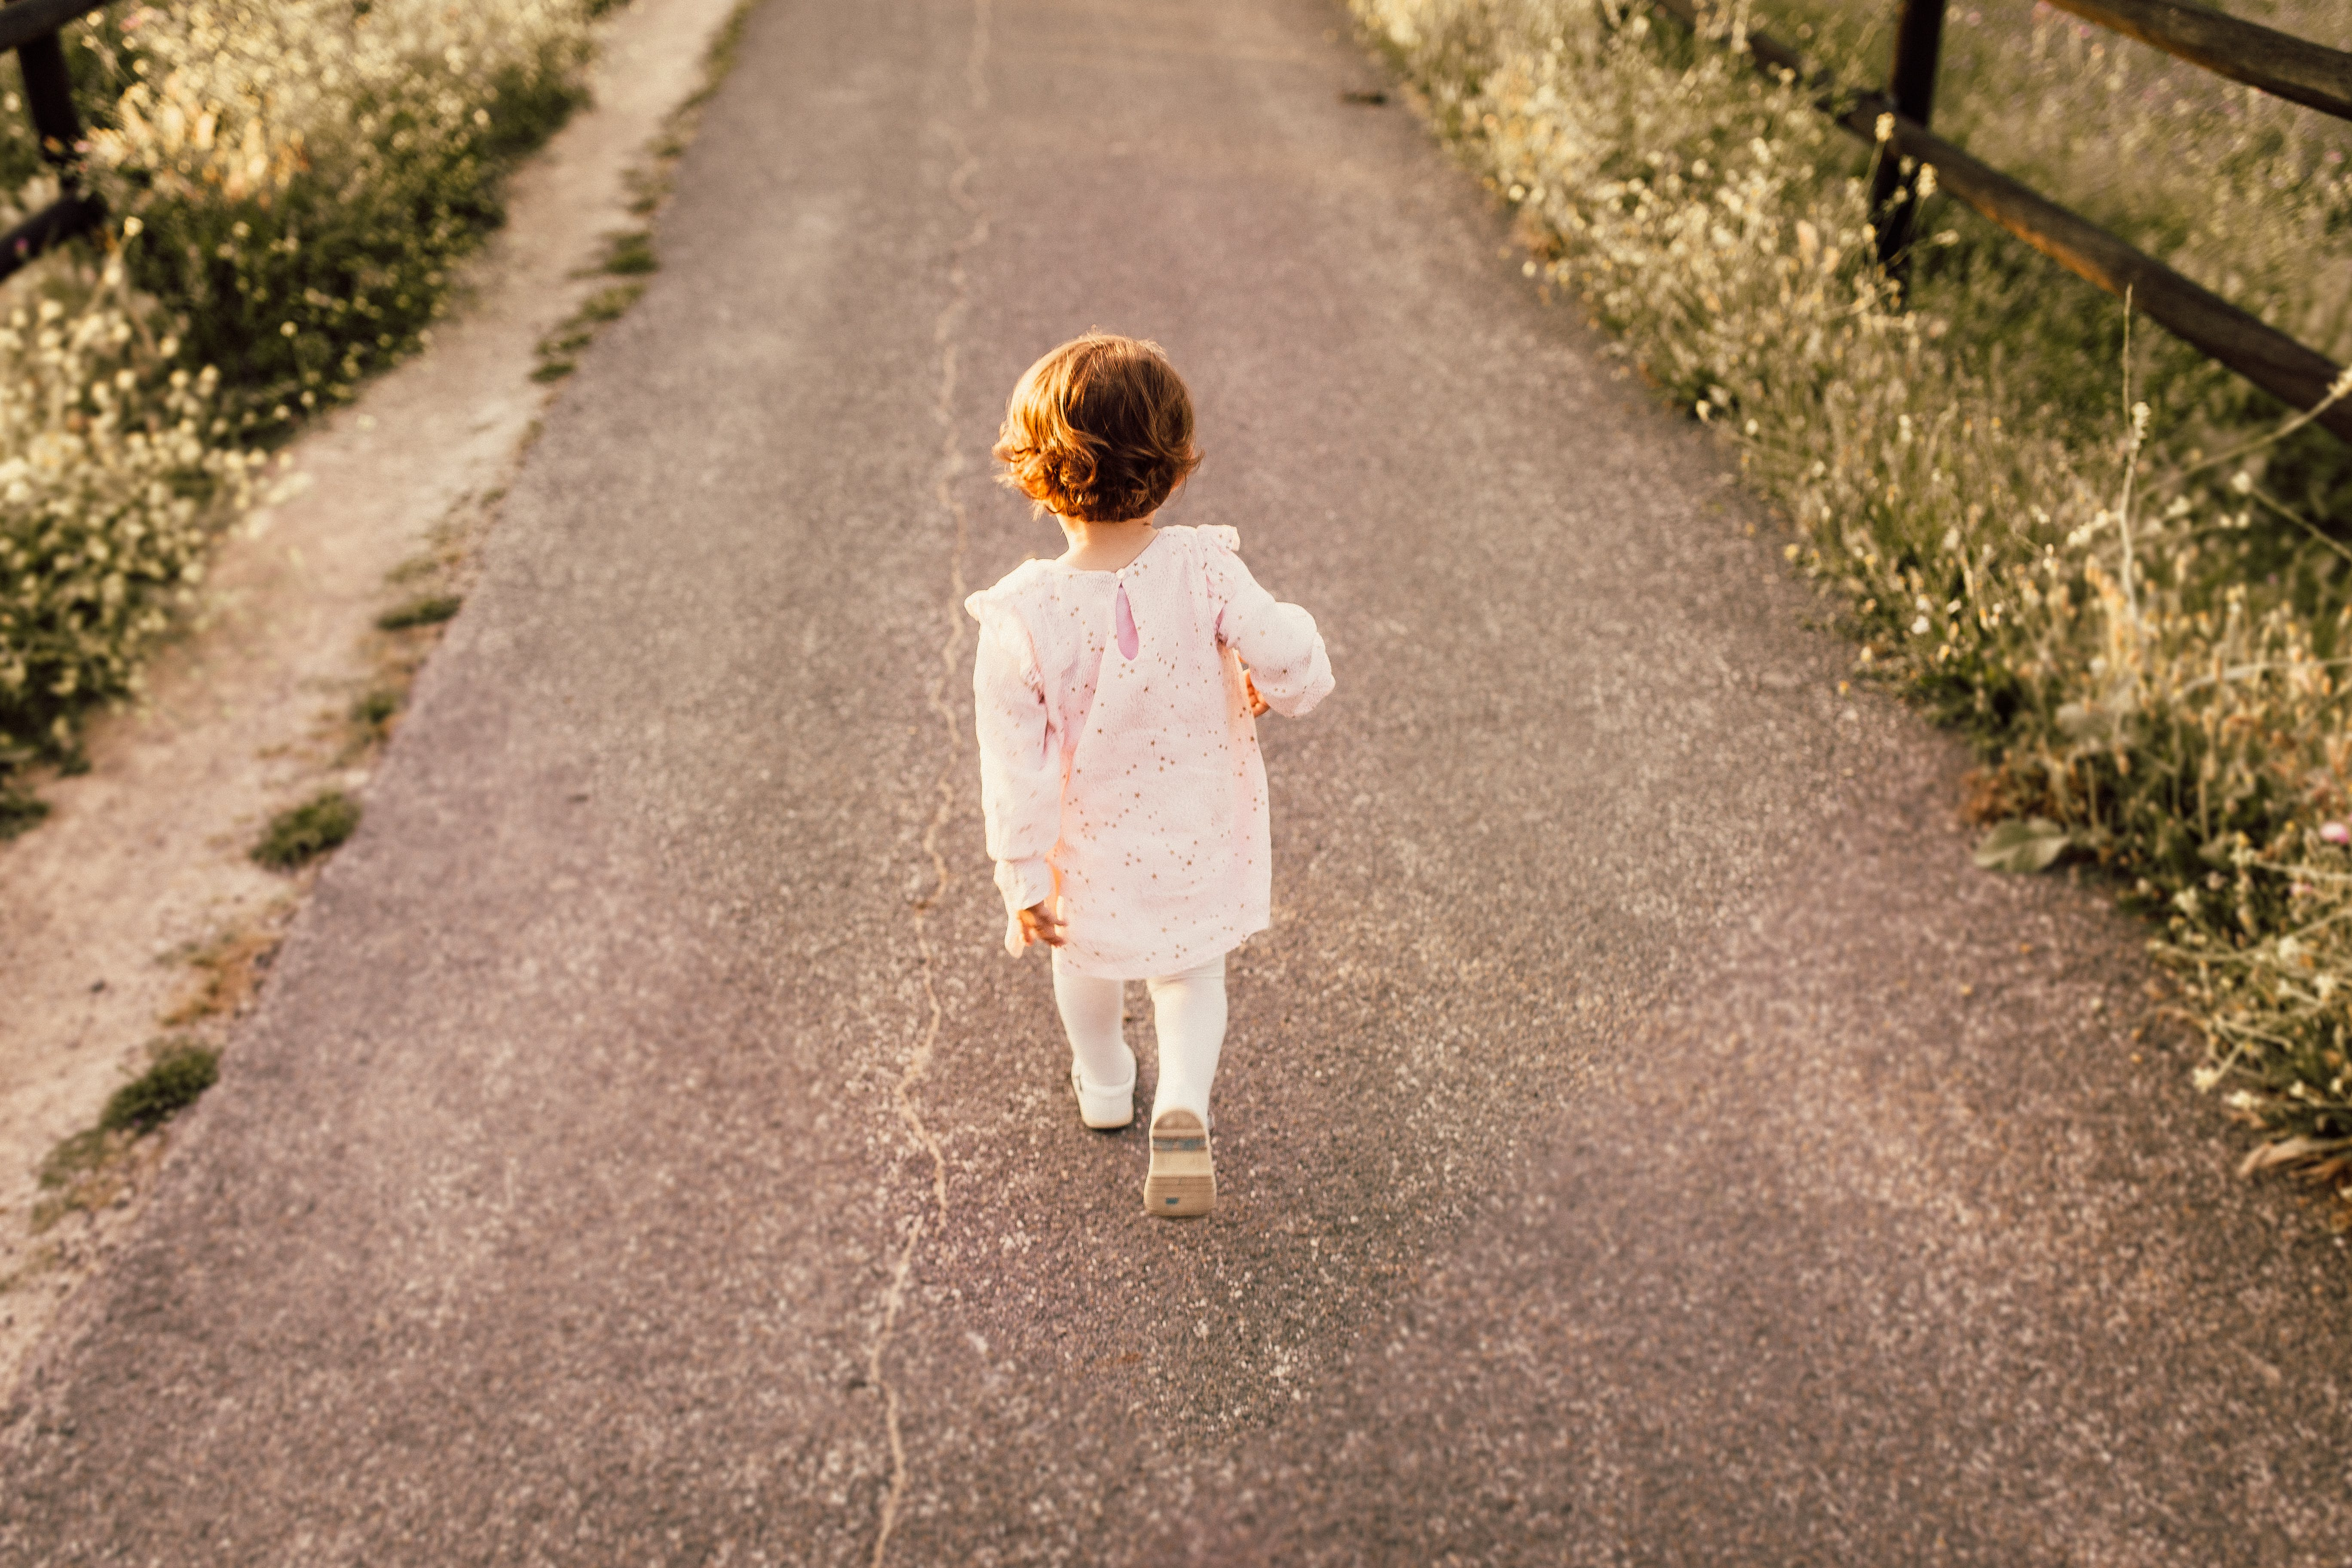 Girl Wearing White Clothes Walking on Pavement Road